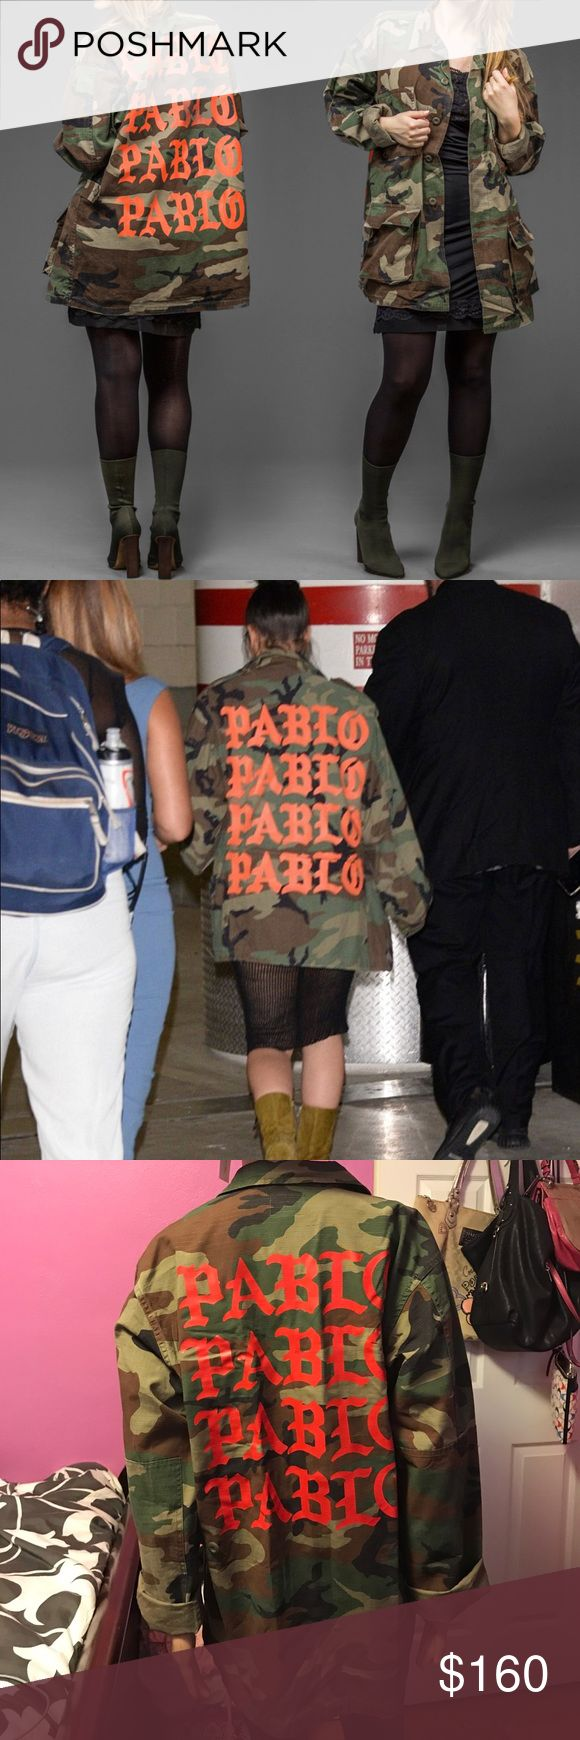 NWOT!The Life of PABLO Army Fatigue Utility Jacket New! Price reflects authenticity. Please no Trades! Yeezy Jackets & Coats Utility Jackets